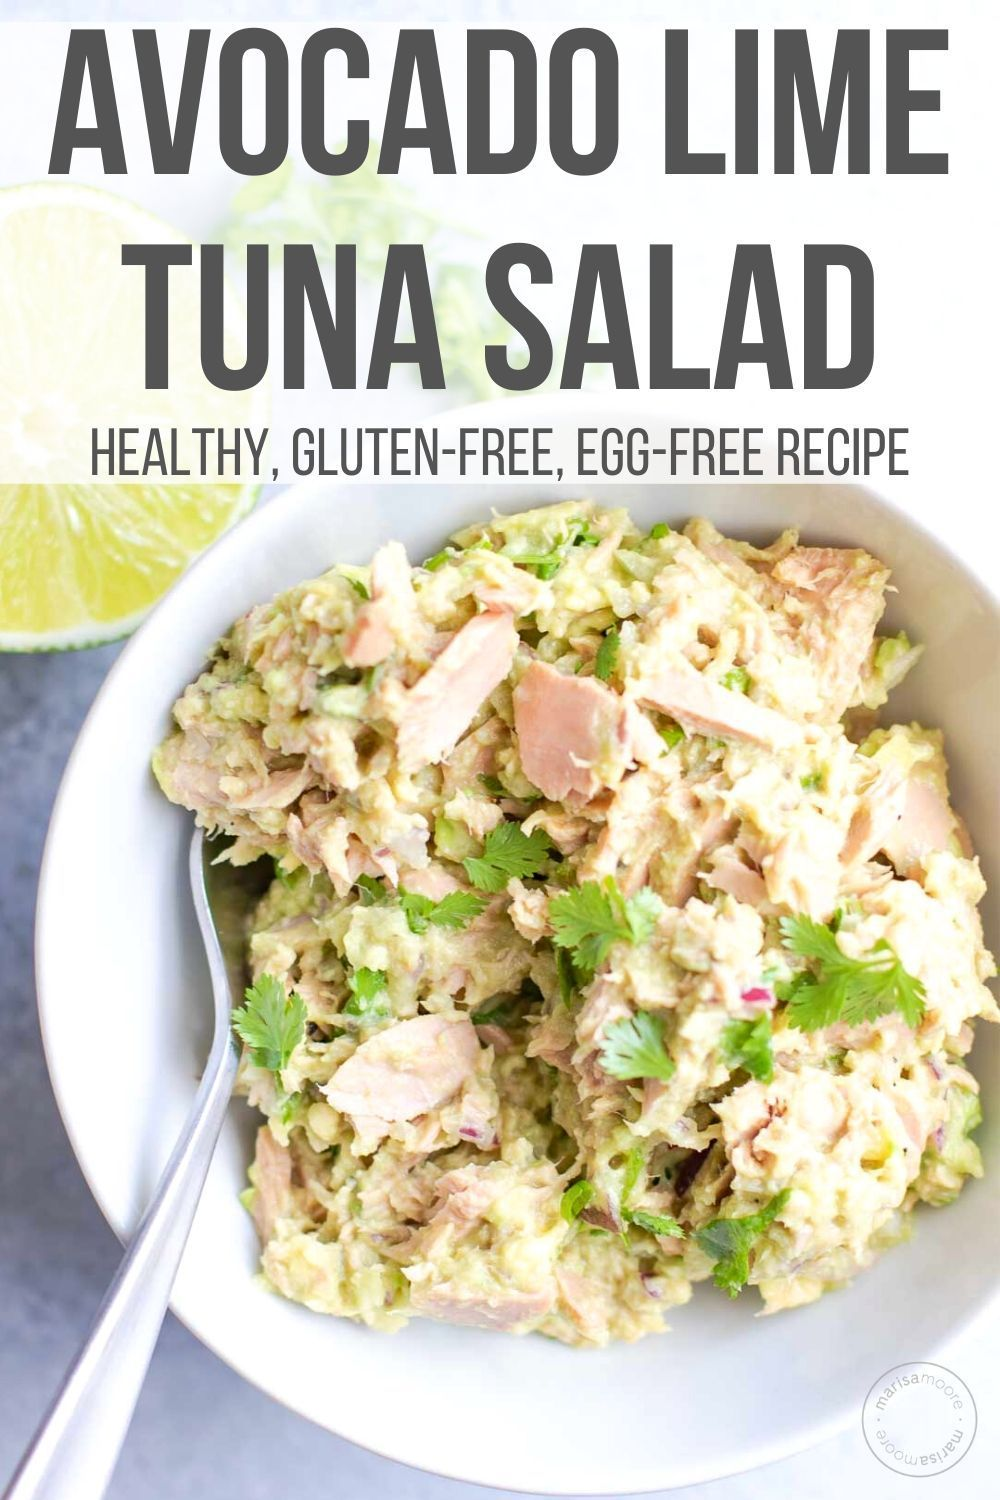 Avocado Lime Tuna Salad Recipe Tuna Salad Recipe Healthy Healthy Tuna Recipes Healthy Tuna Salad